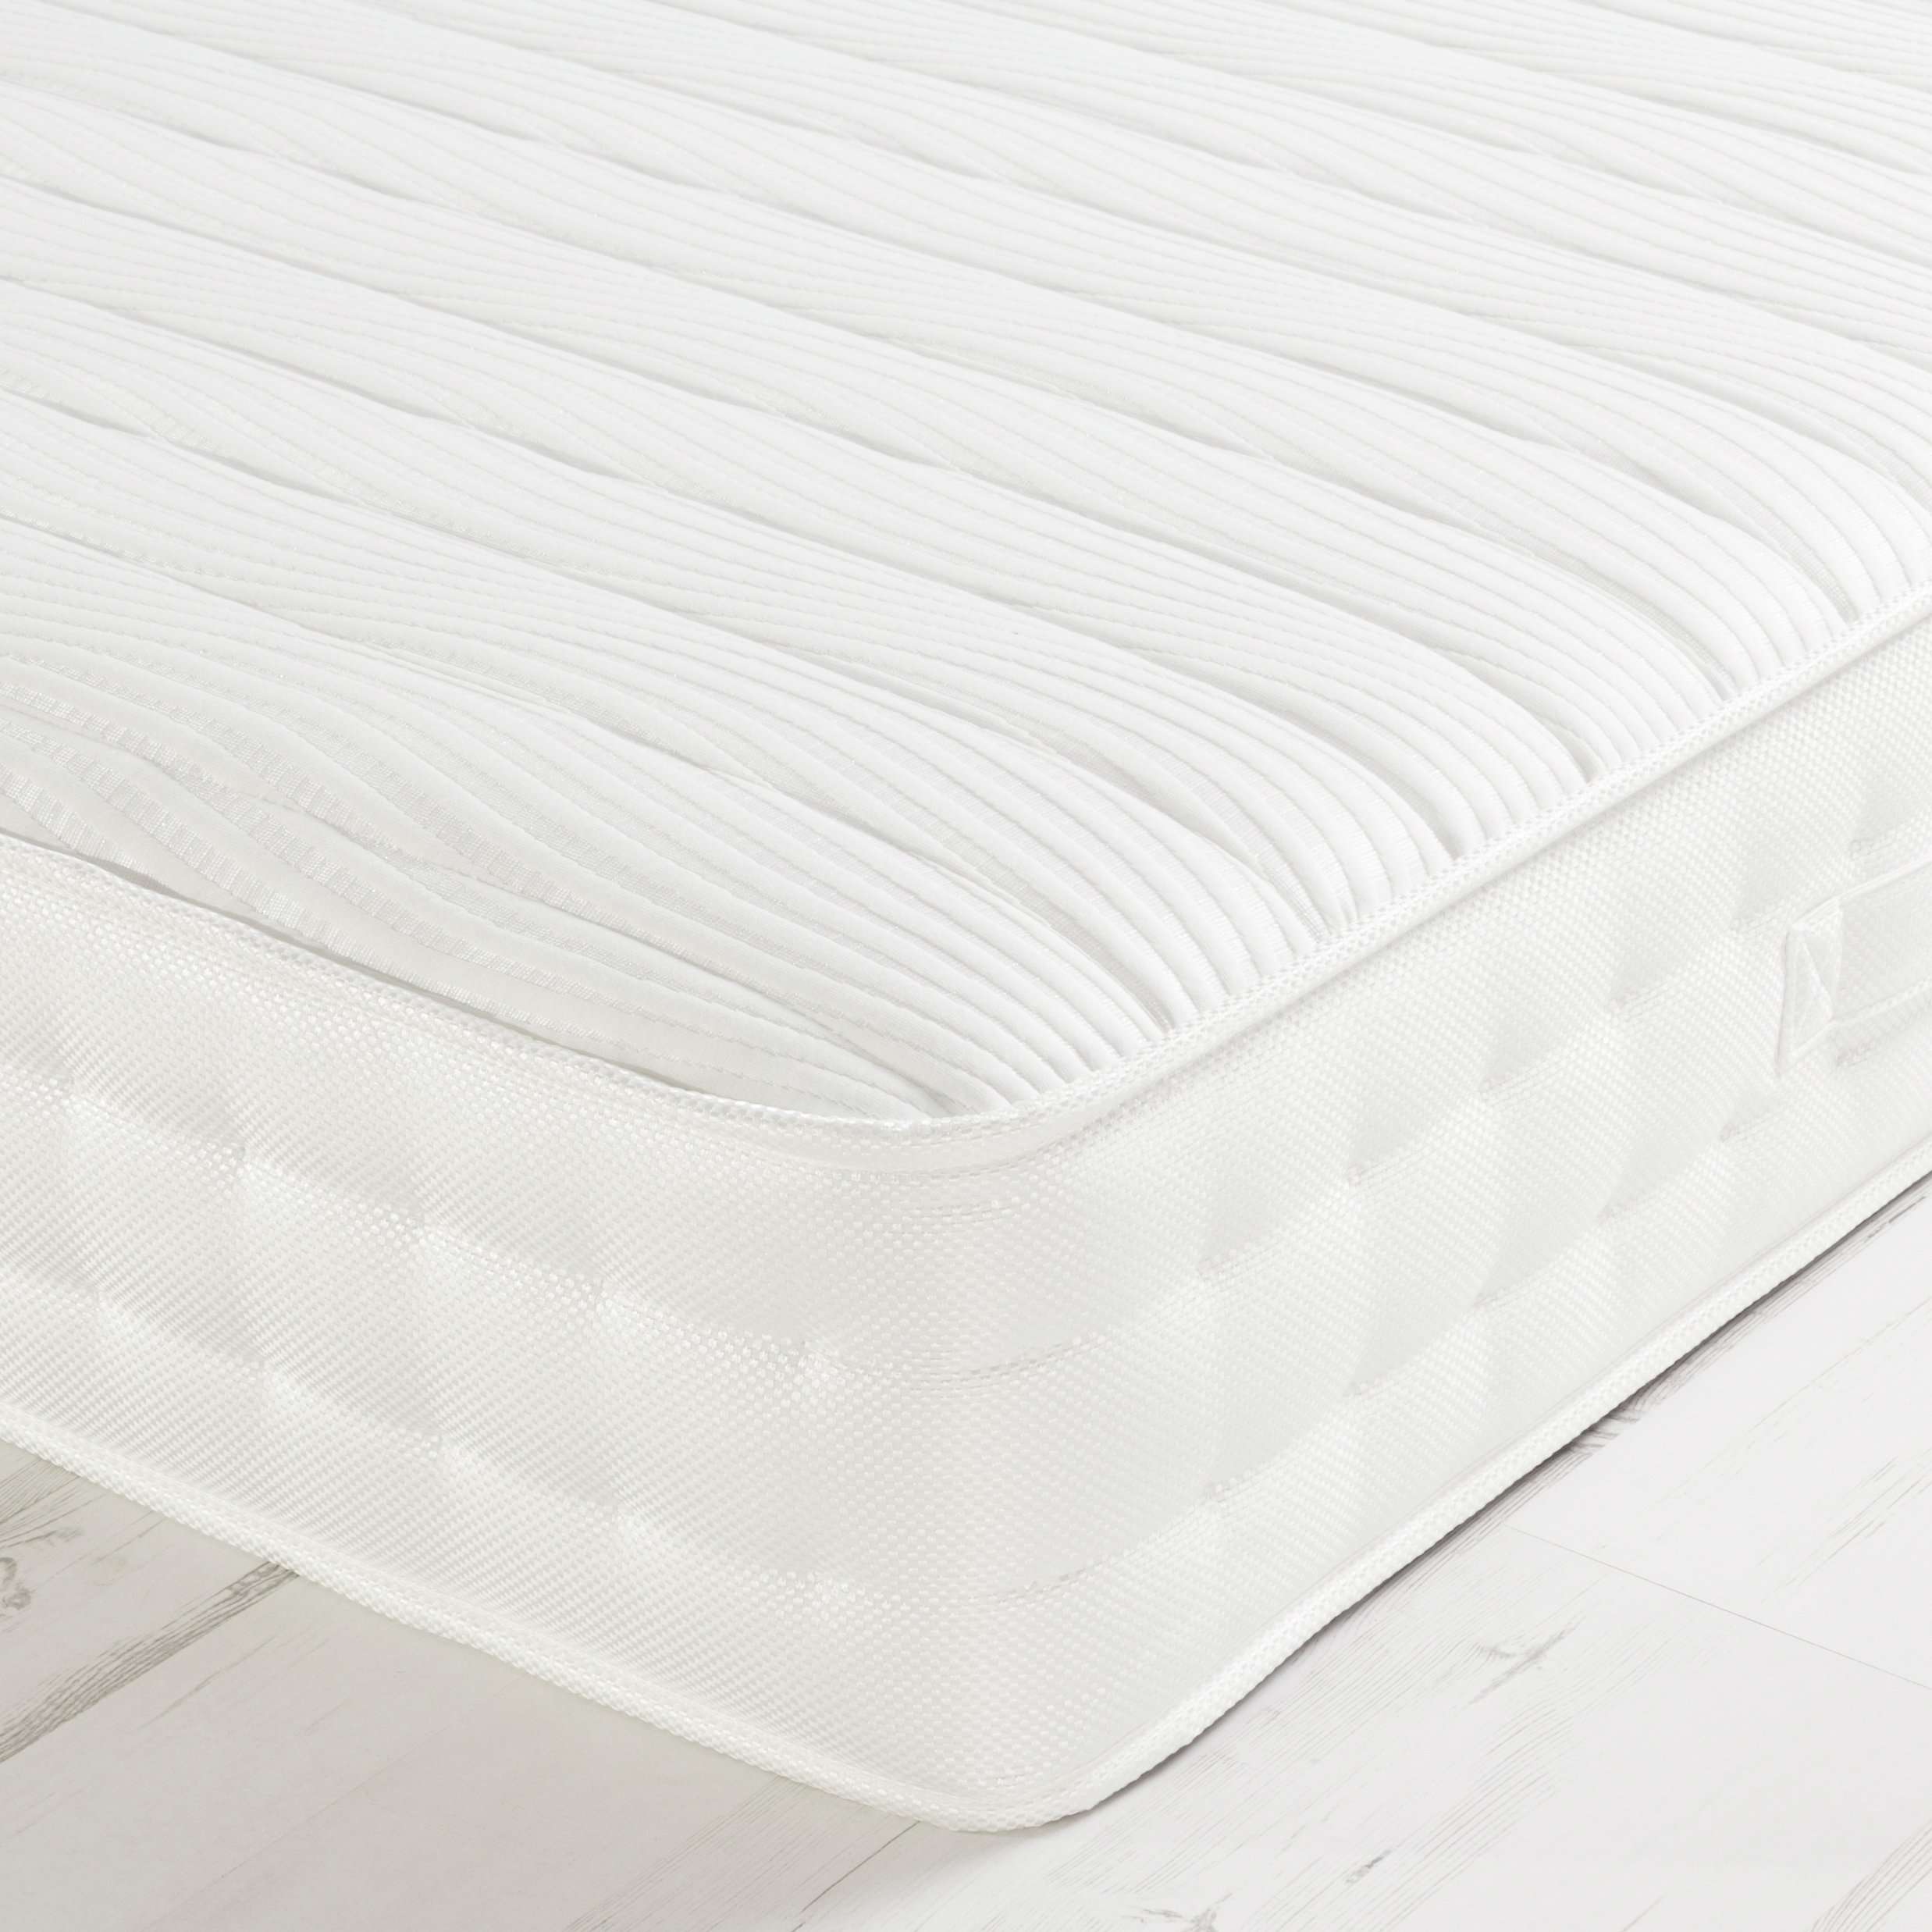 Airsprung Leiston 4000 Pocket Memory Kingsize Mattress